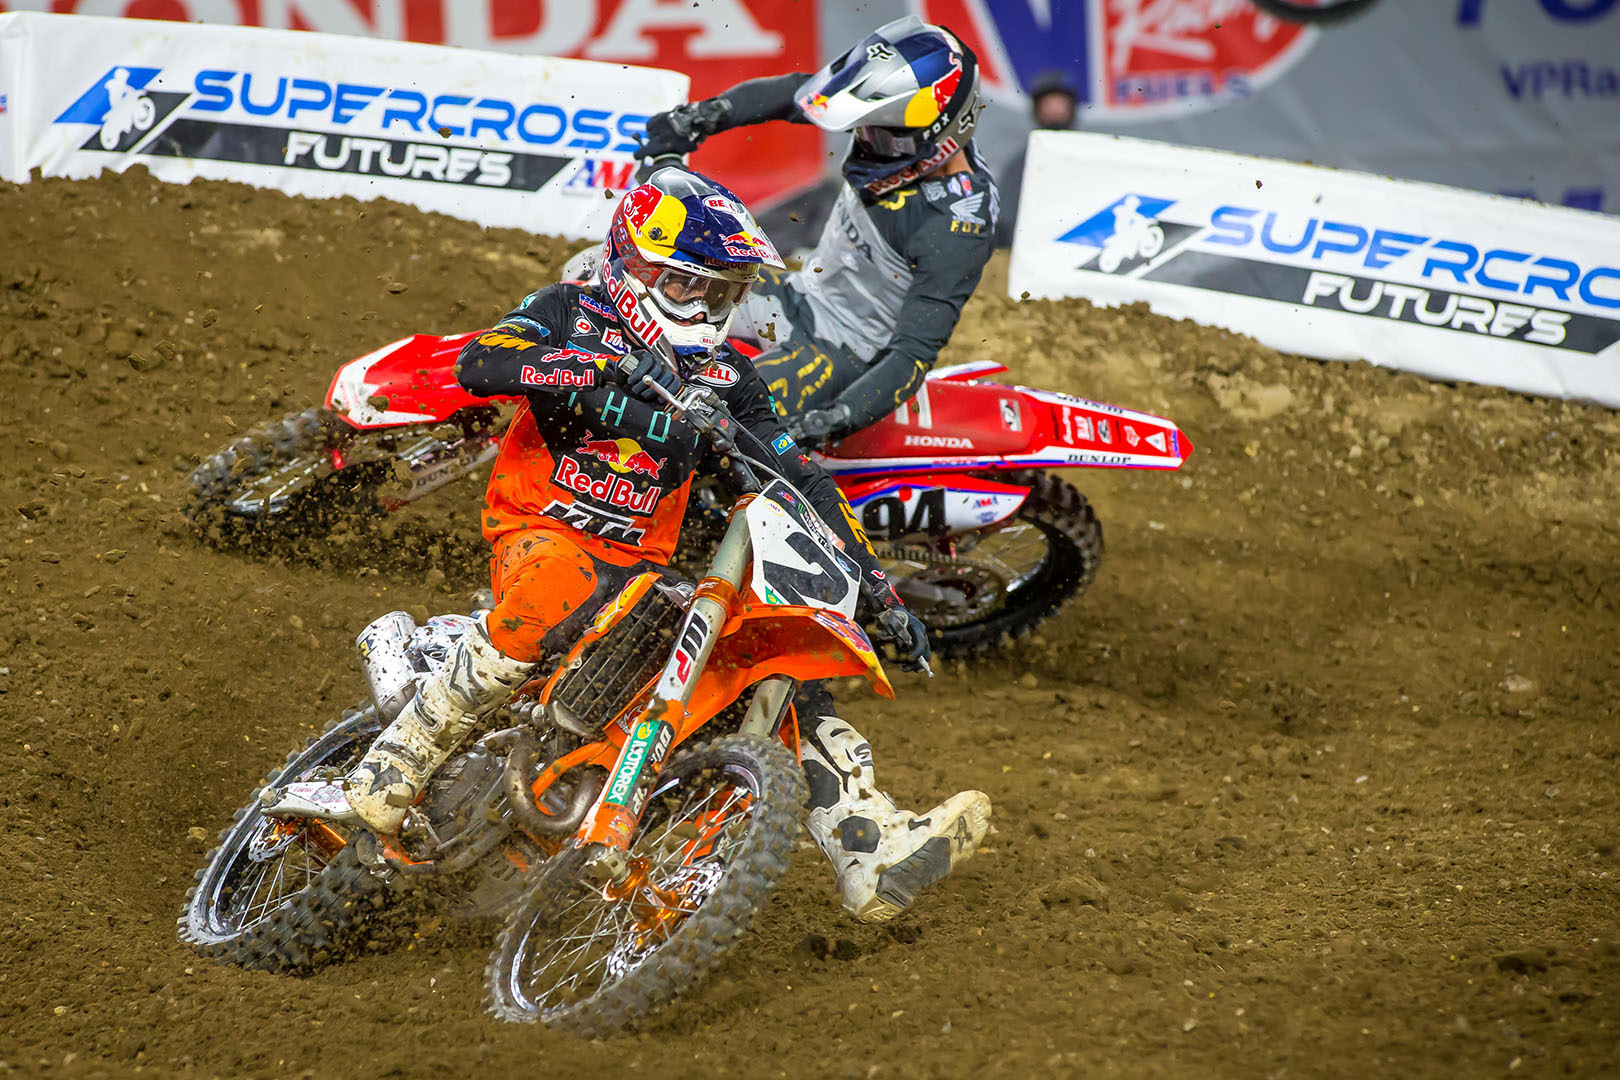 2019 Arlington Supercross Preview - Cooper Webb and Ken Roczen